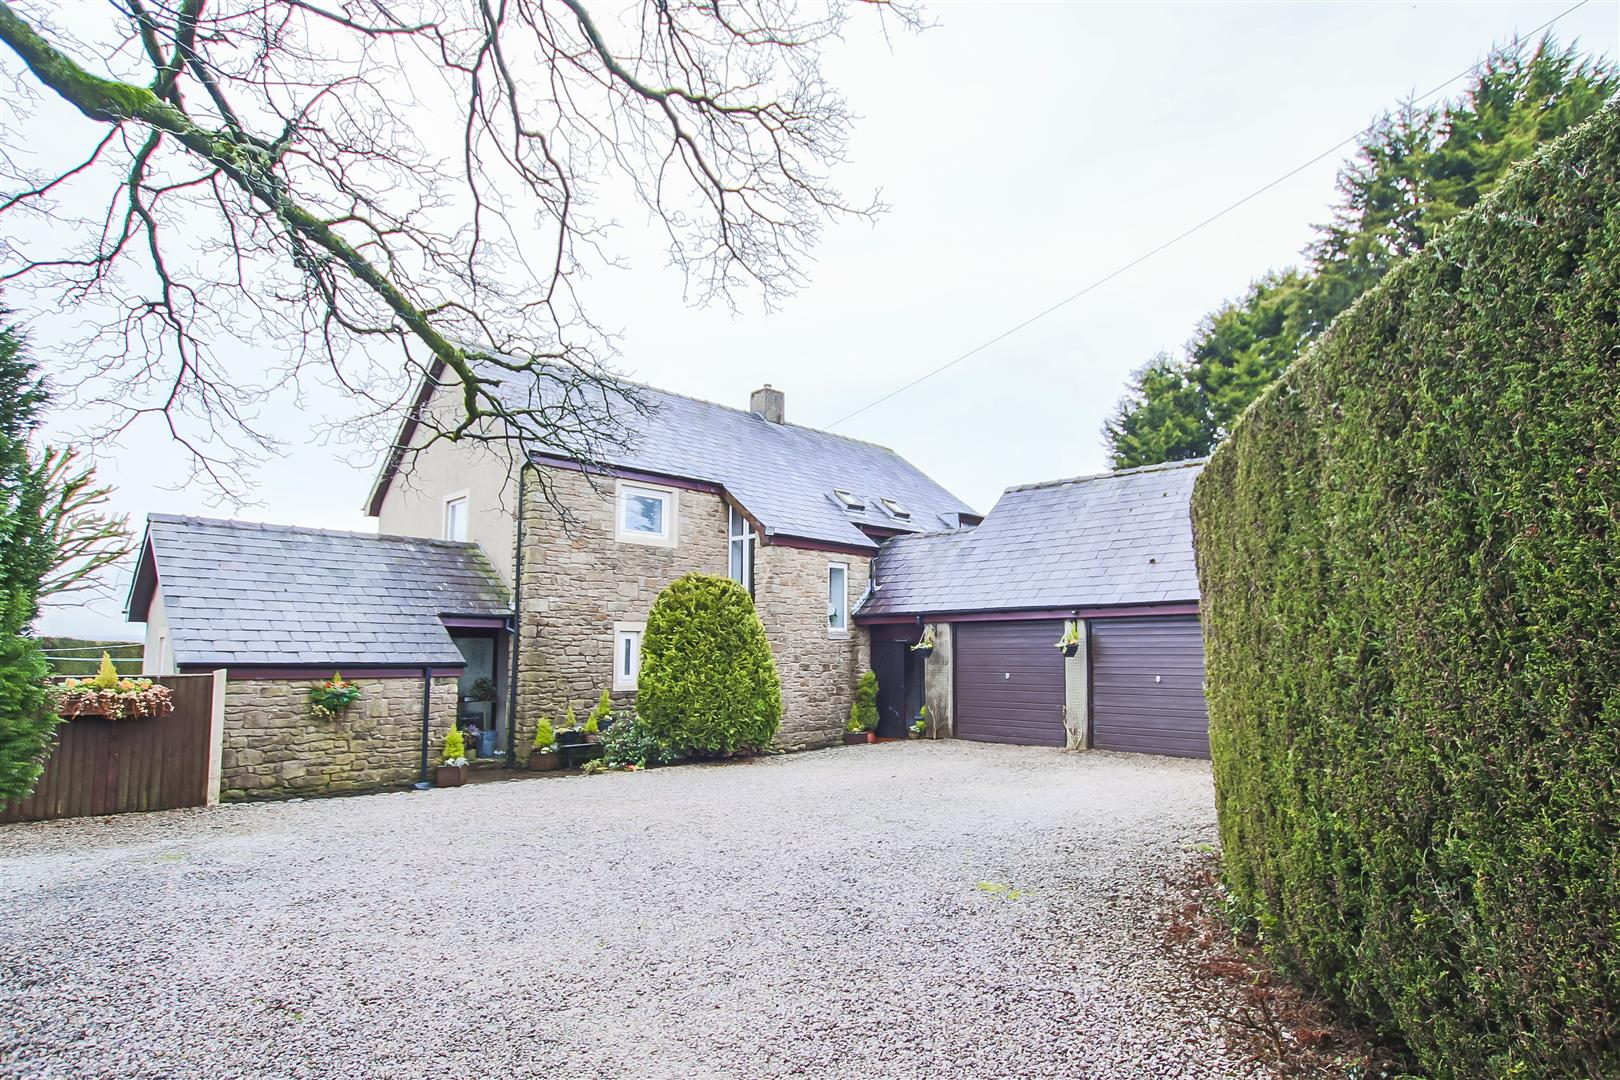 4 Bedroom Detached House For Sale - Front External